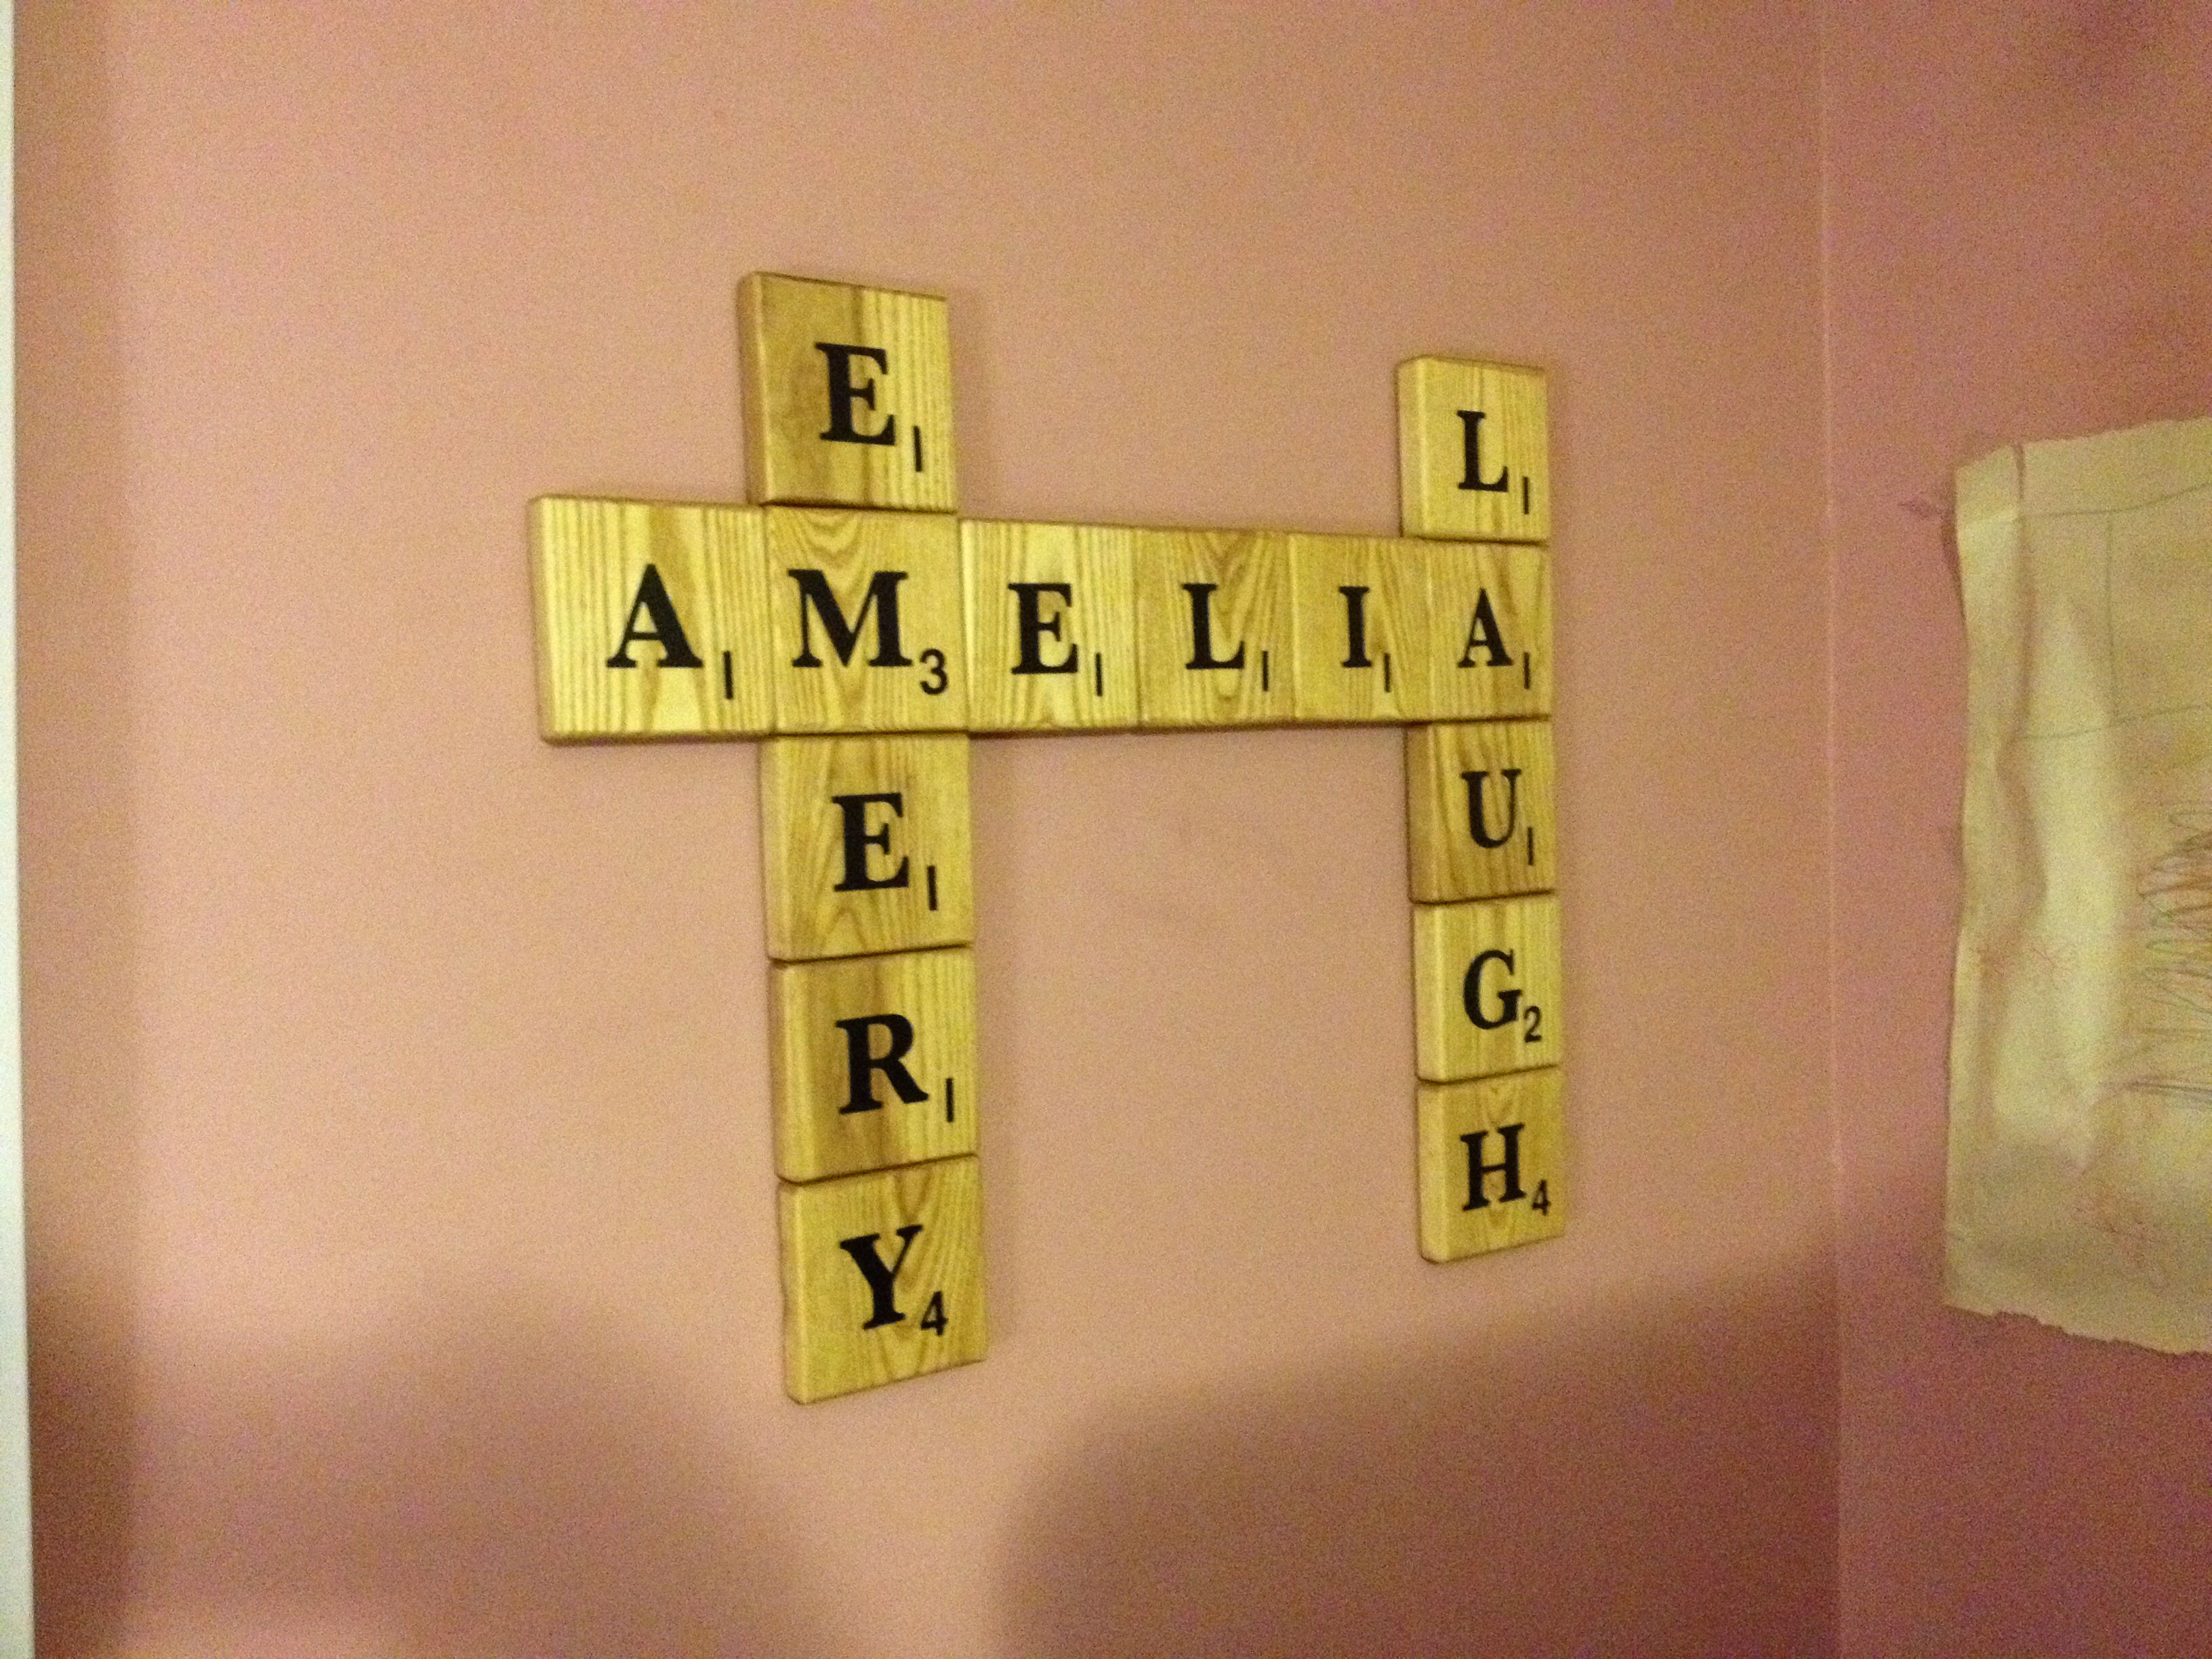 Scrabble pieces I made with Ash | Wall Art | Pinterest | Scrabble